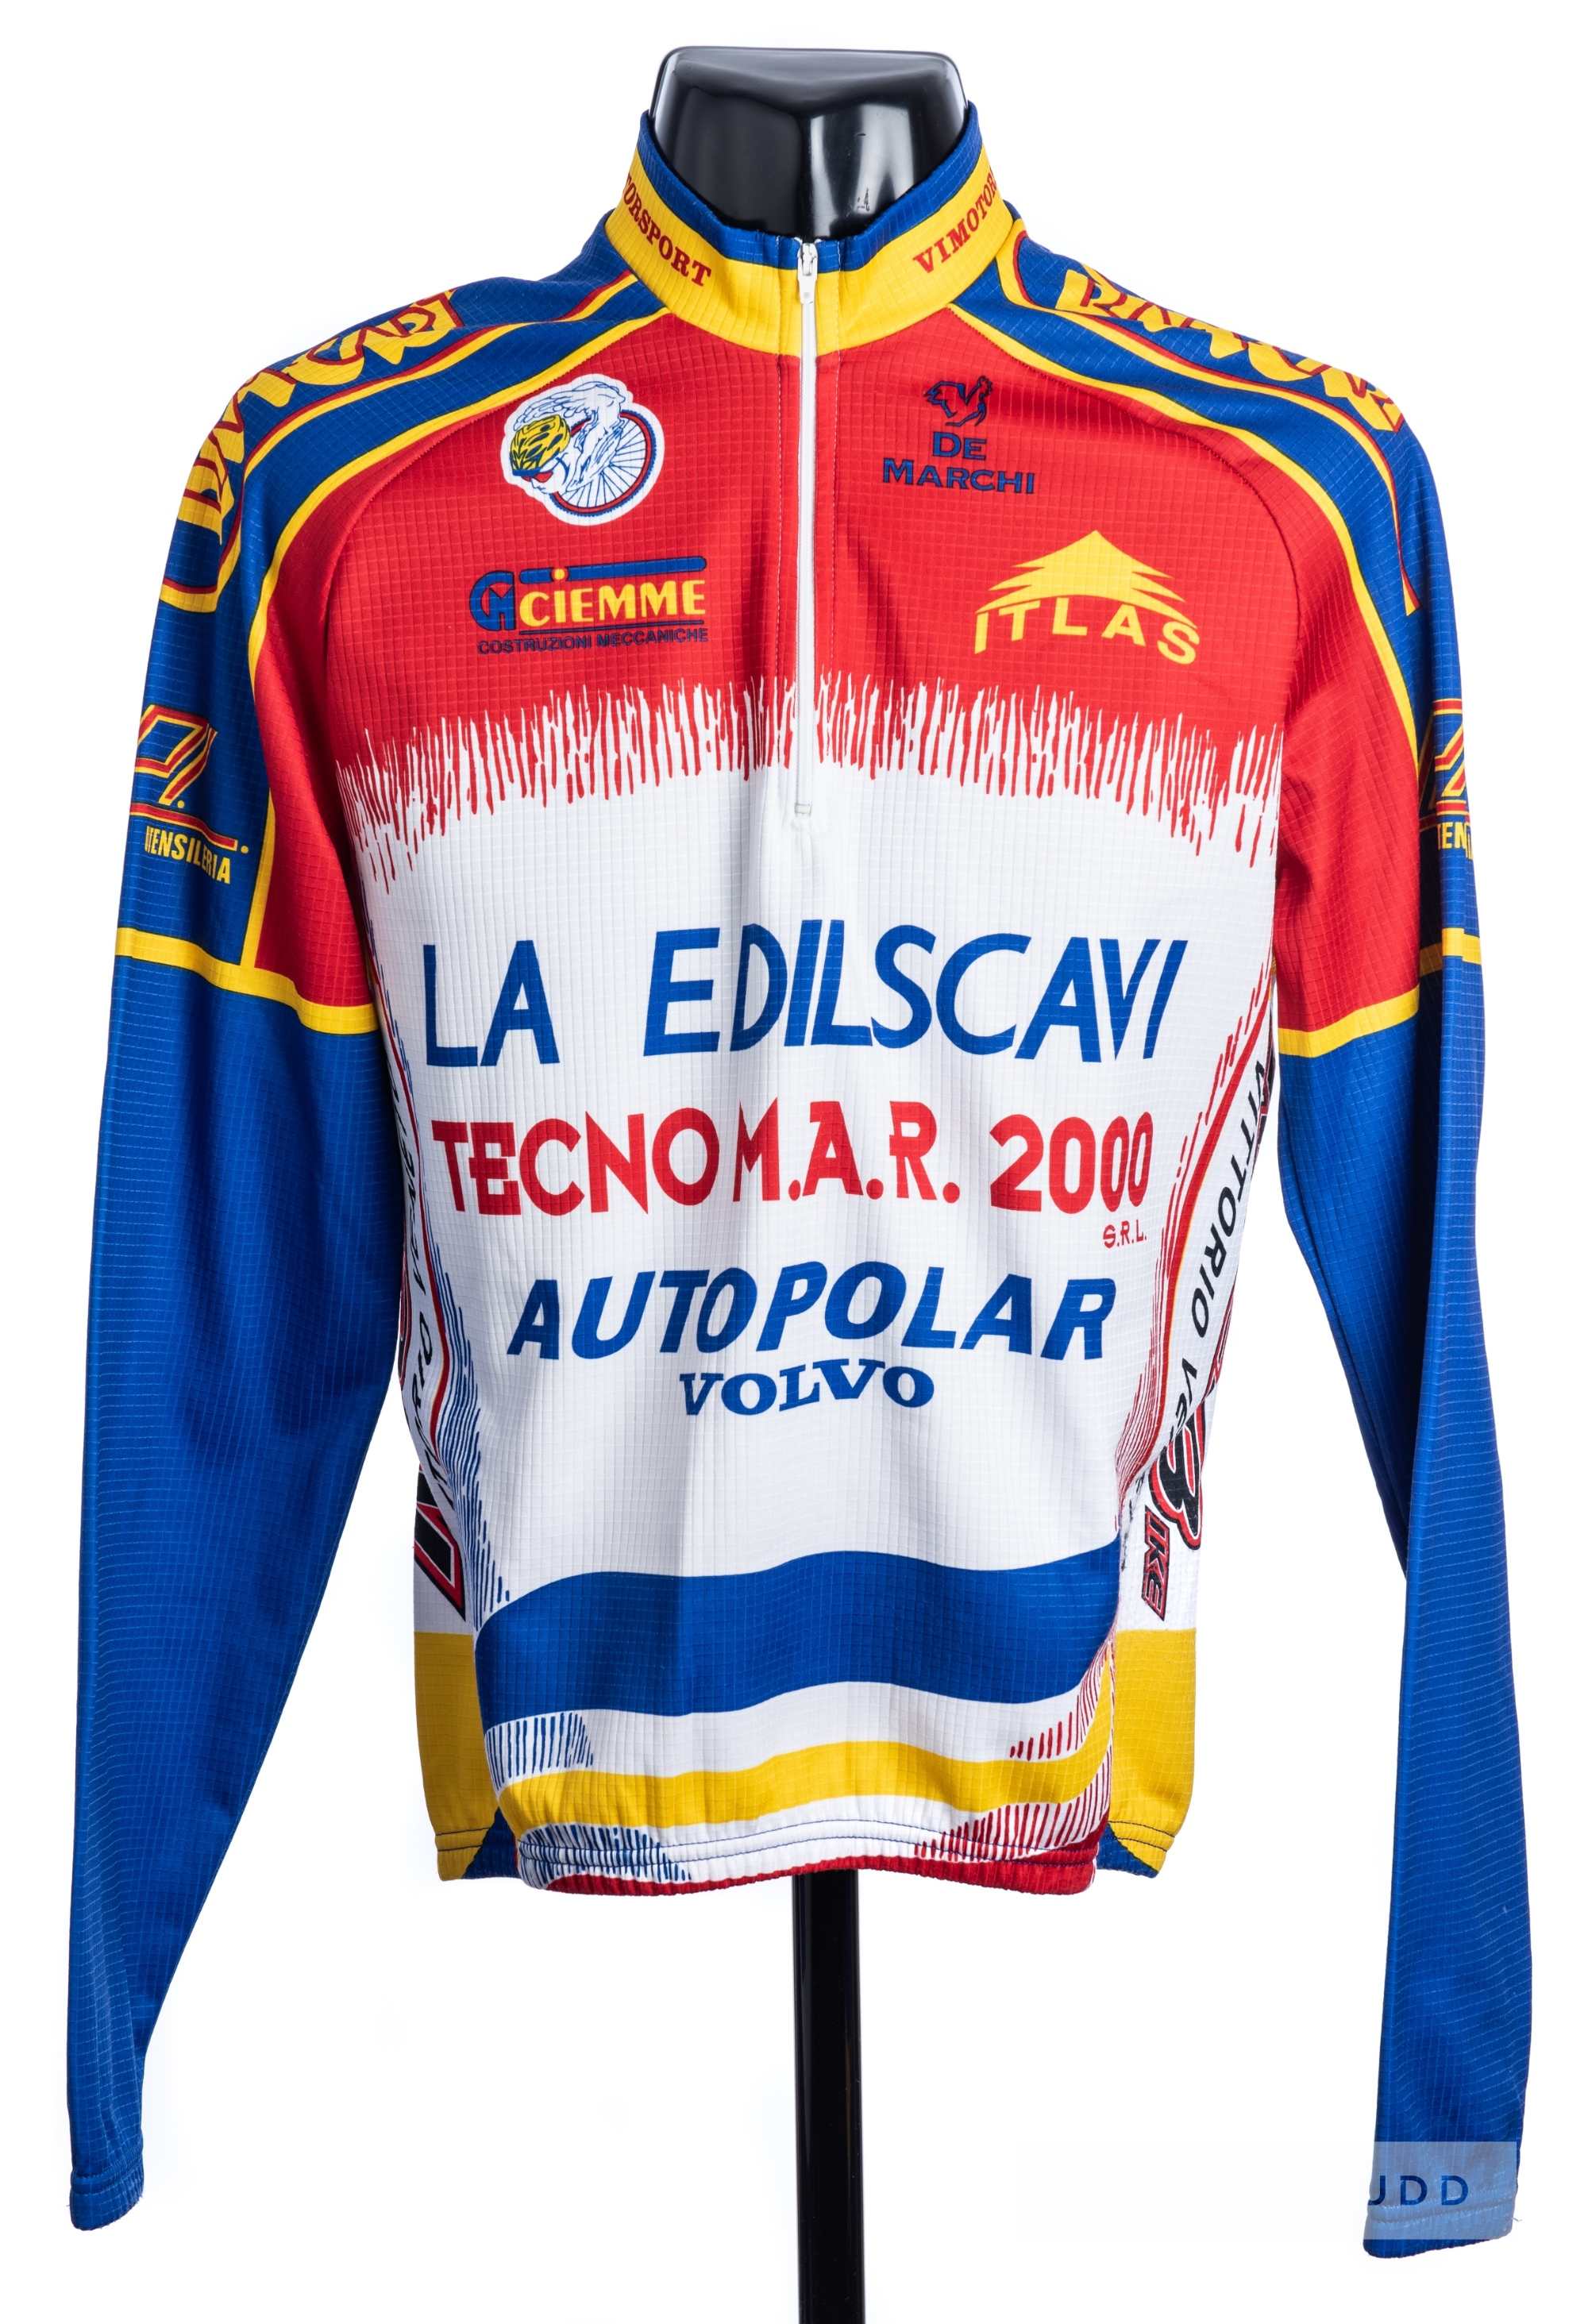 2000 red, yellow, blue and white De Marchi Cycling race jersey, scarce, polyester long-sleeved - Image 3 of 4